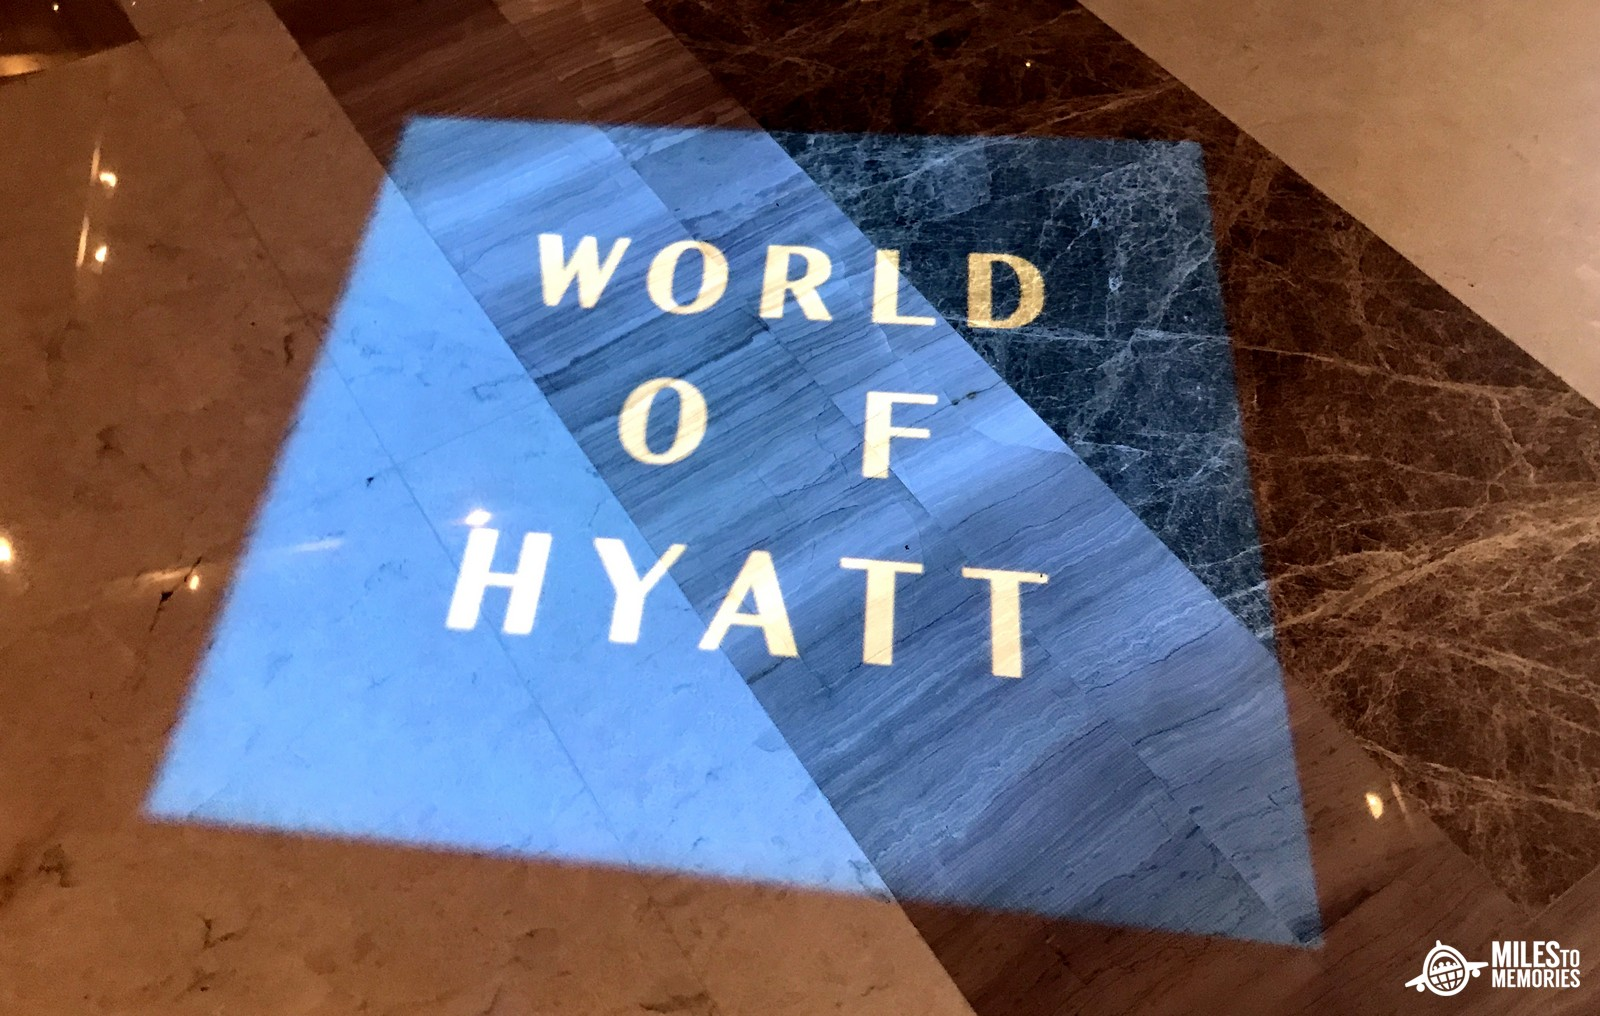 Hyatt Guest of Honor Bookings